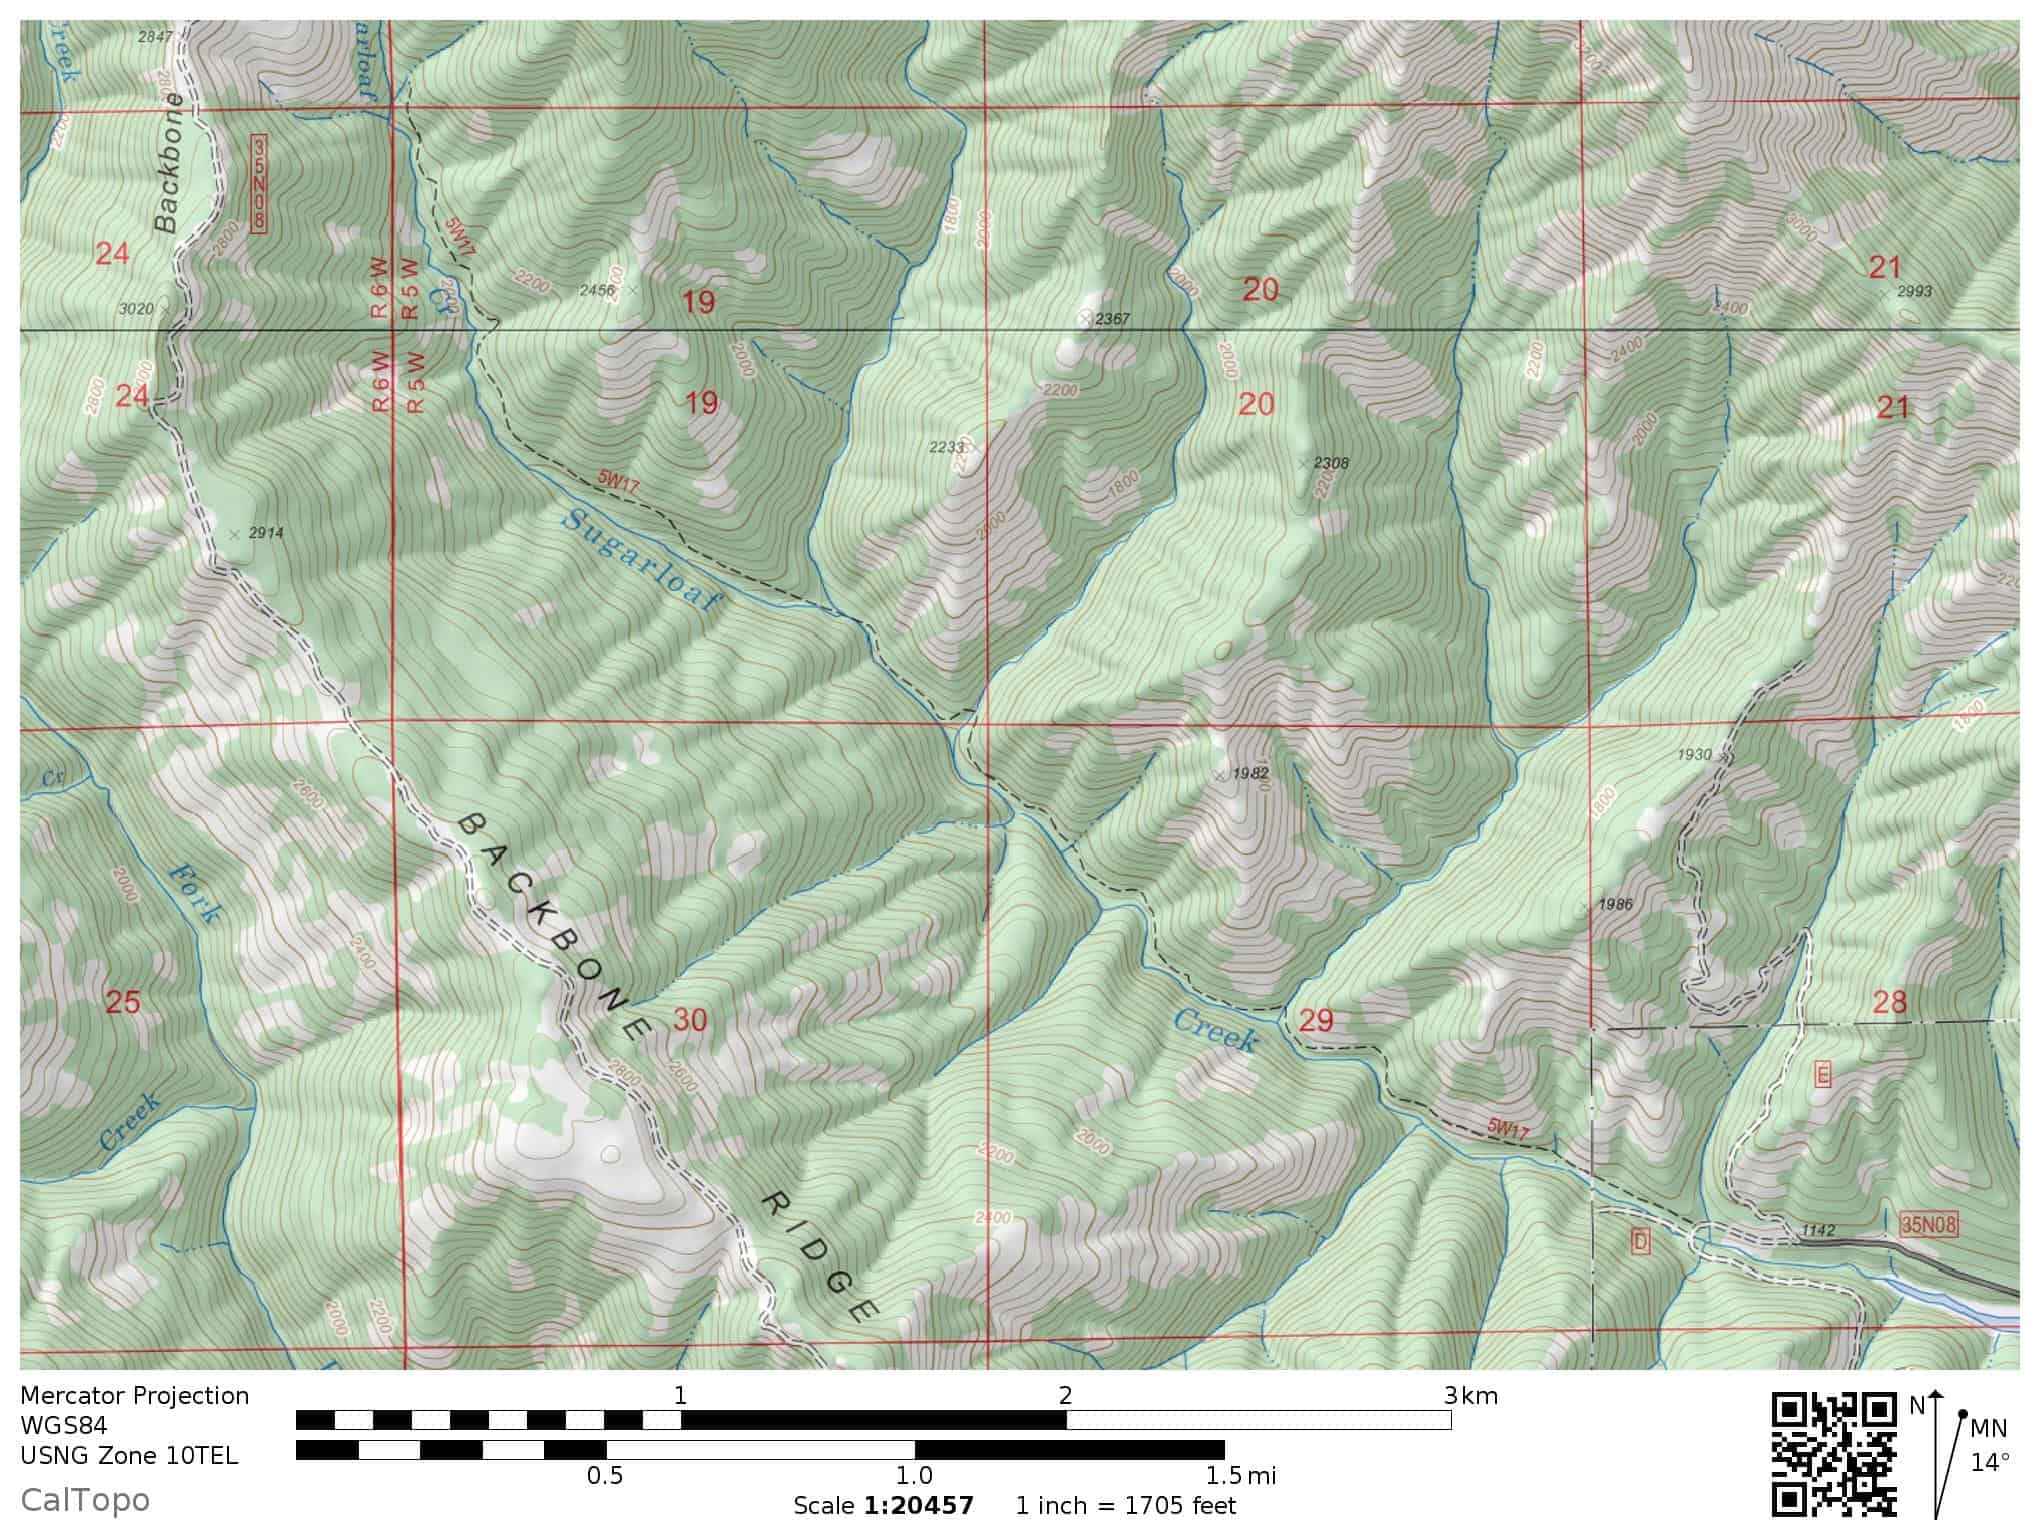 Topographic map of the Sugarloaf Creek Trail near Shasta Lake: for hikers and explorers. Includes Backbone Ridge.